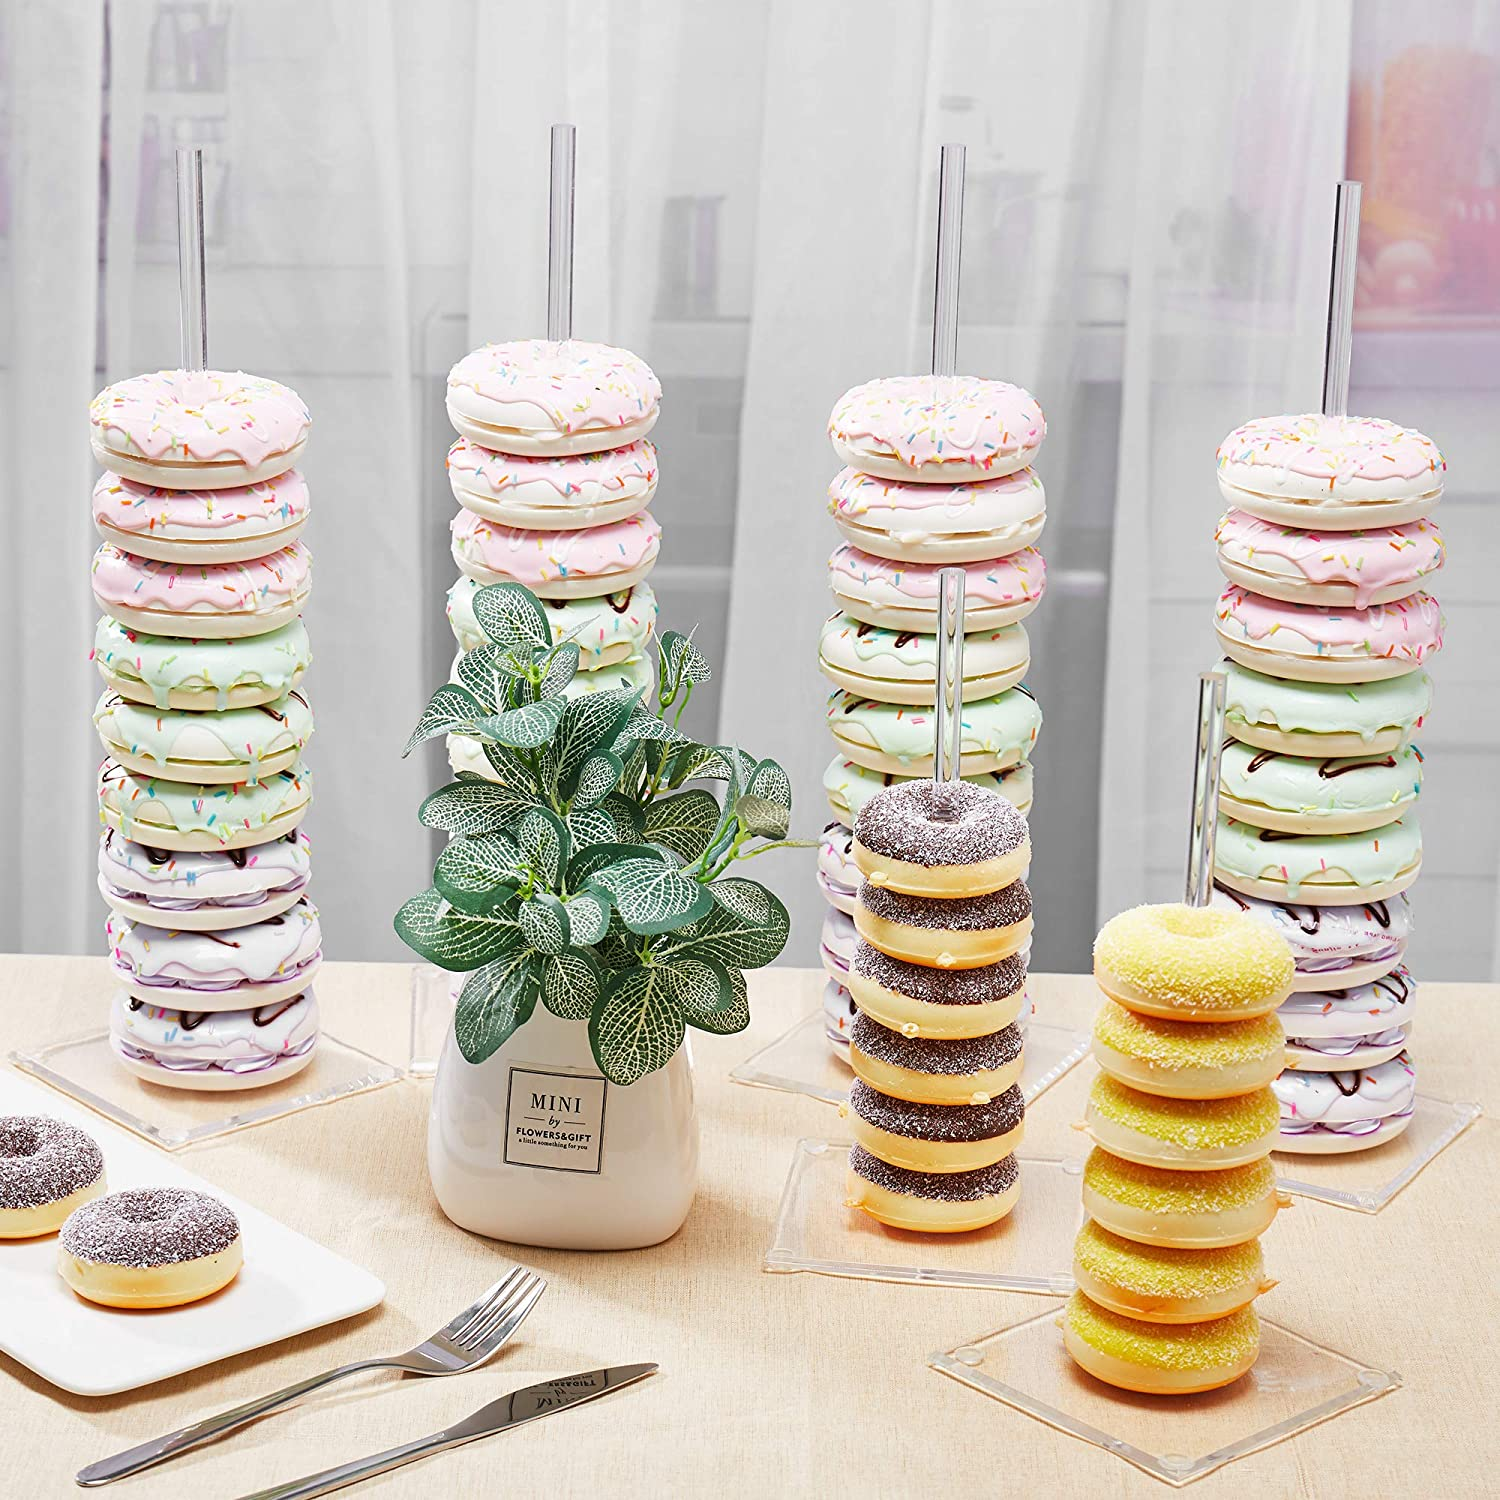 Jofave Acrylic Donut Holder for Baby Shower, Clear Bagel Doughnut Stand for Parties,Sweets Tables,Wedding Treats.6 piece